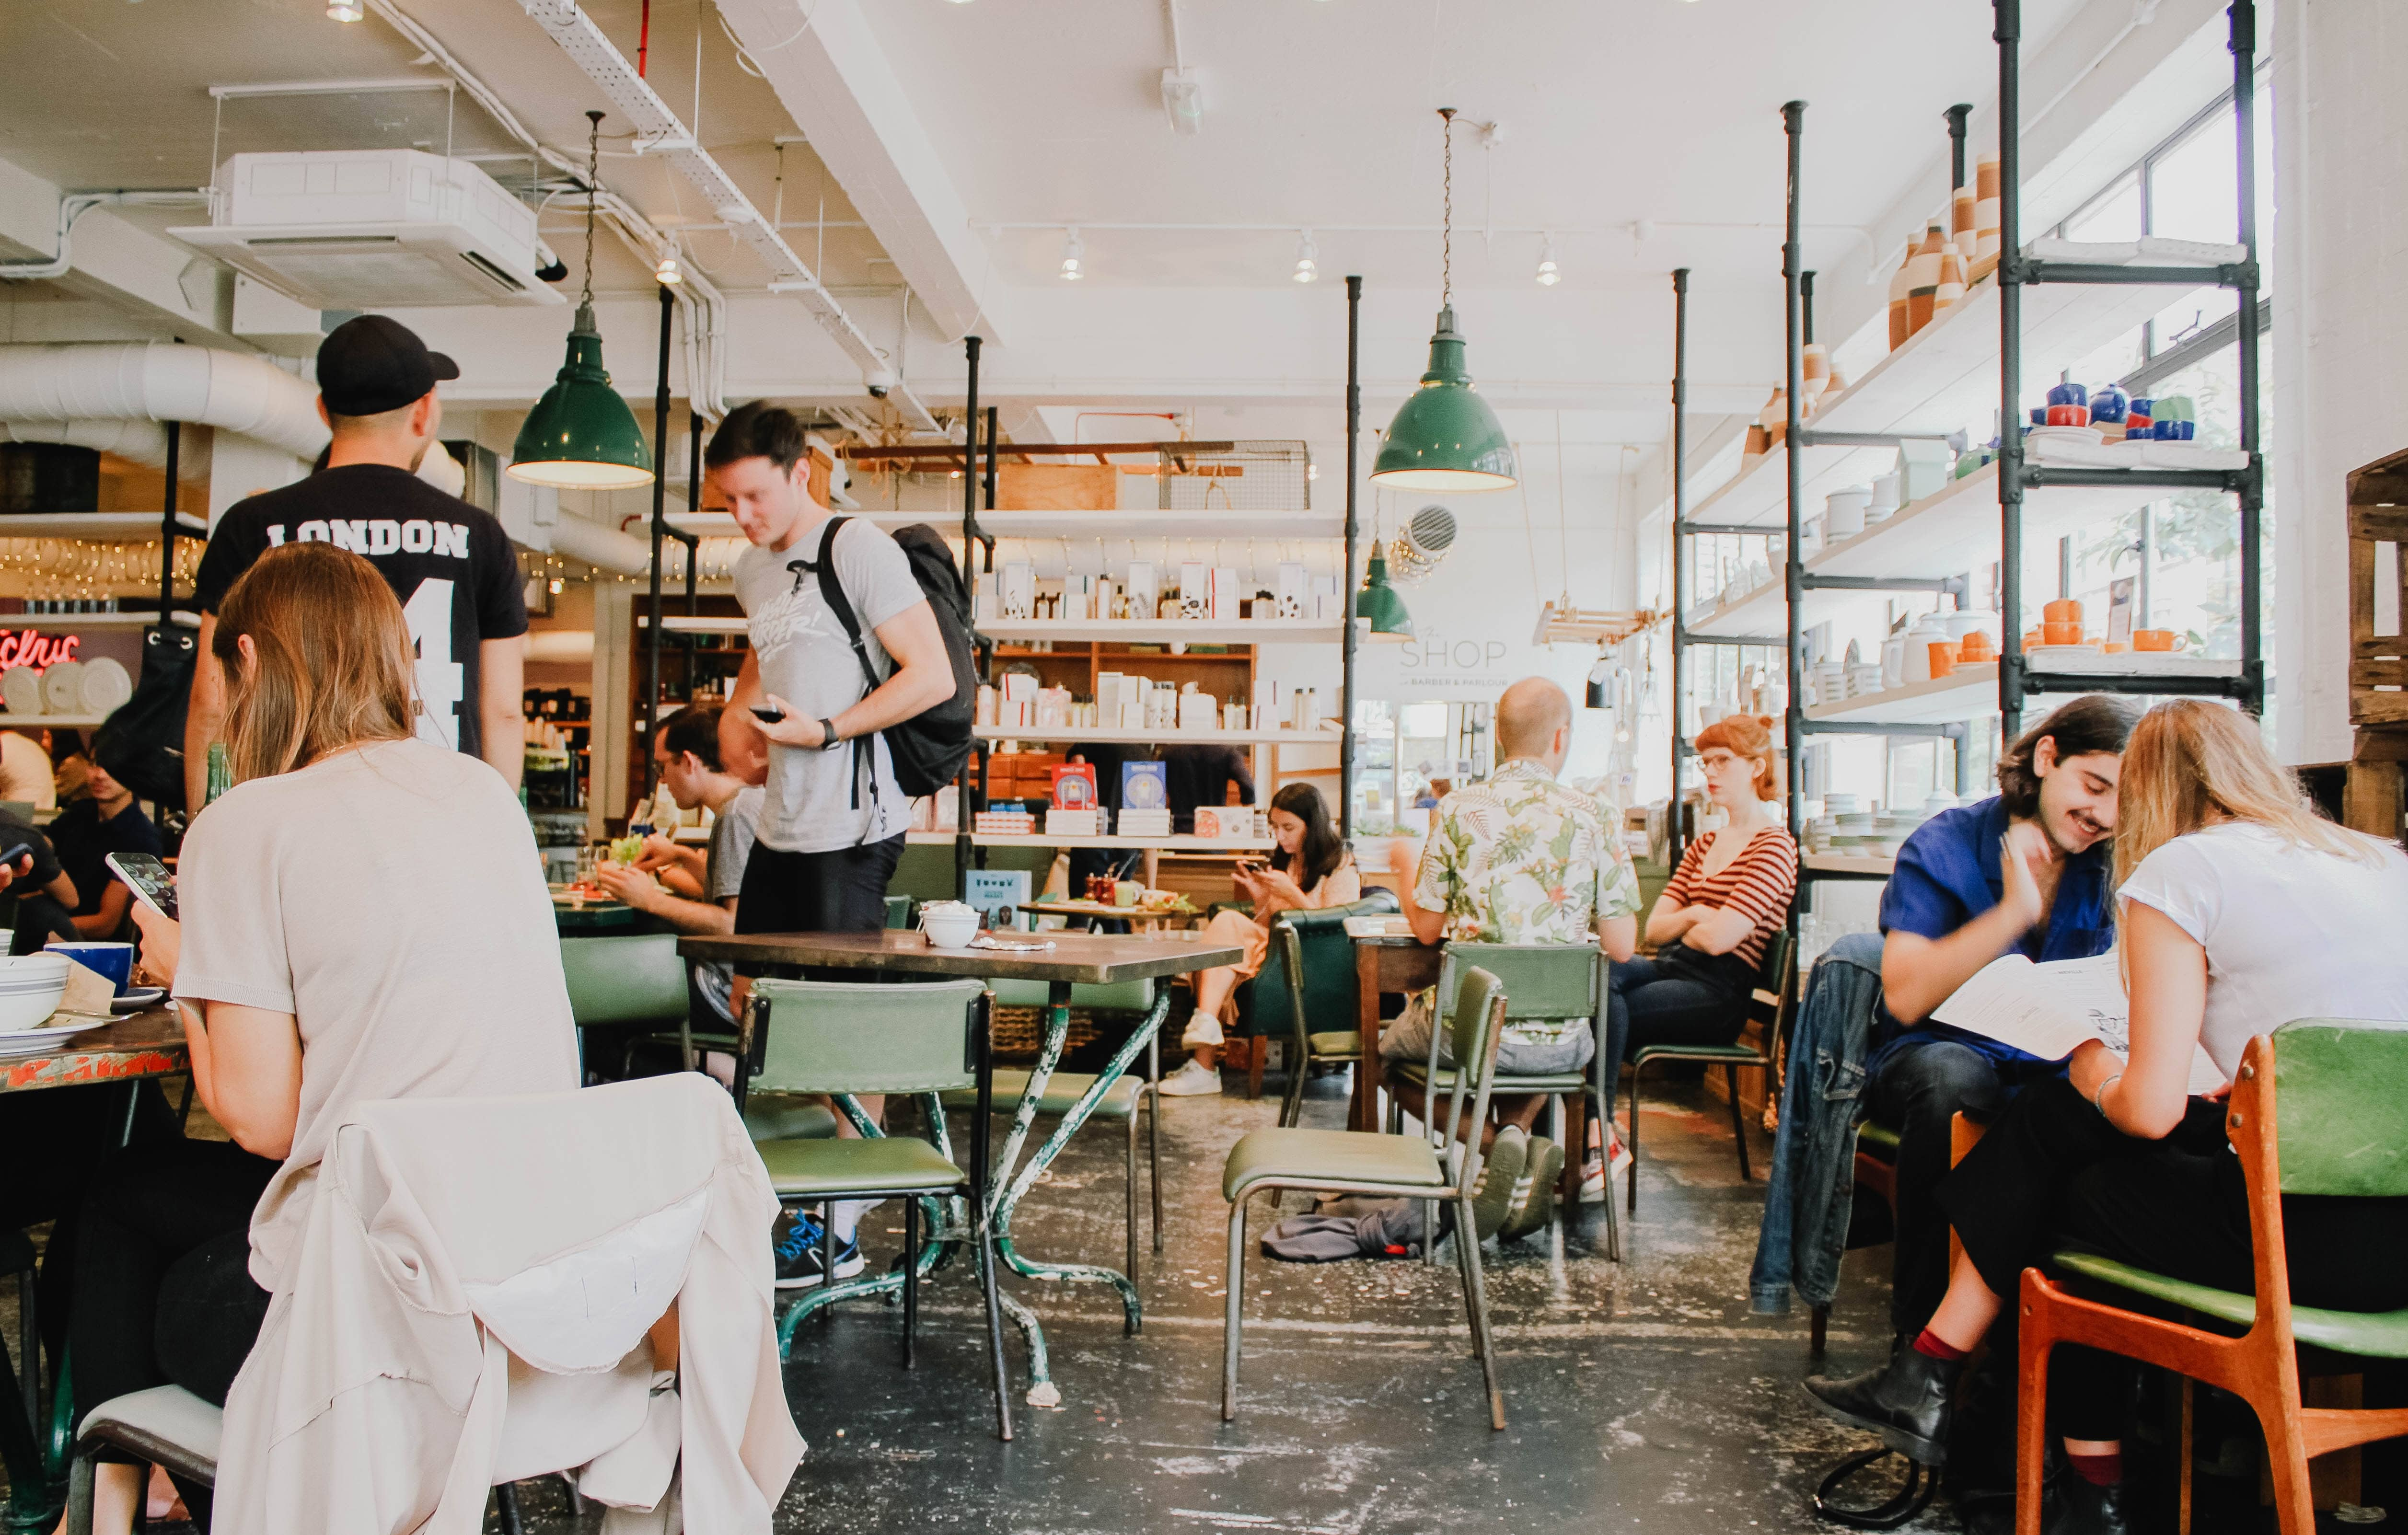 coworking spaces vs cafes